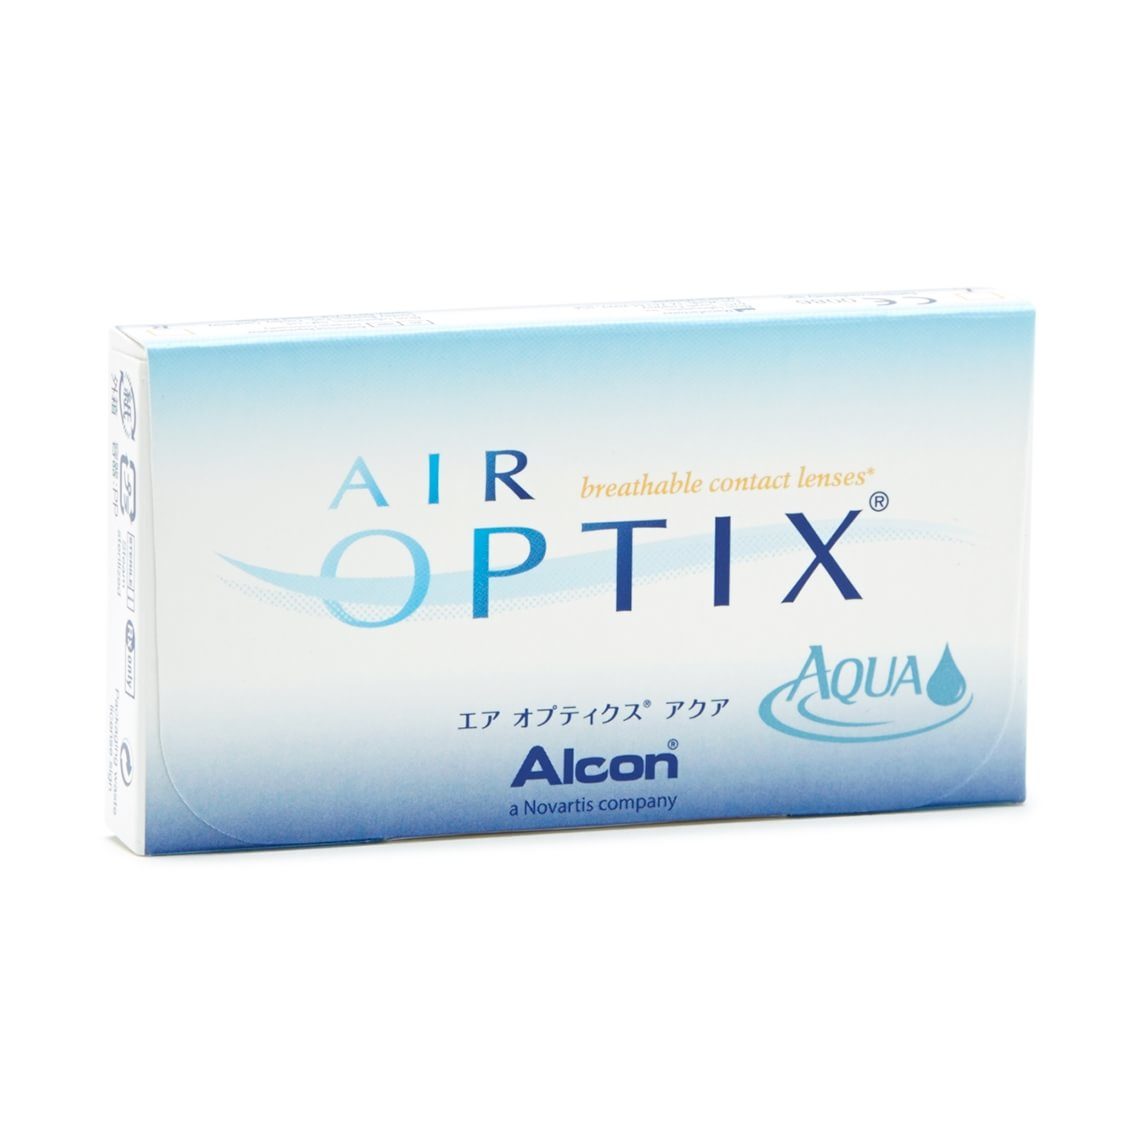 Air Optix Aqua 6 stk/pk